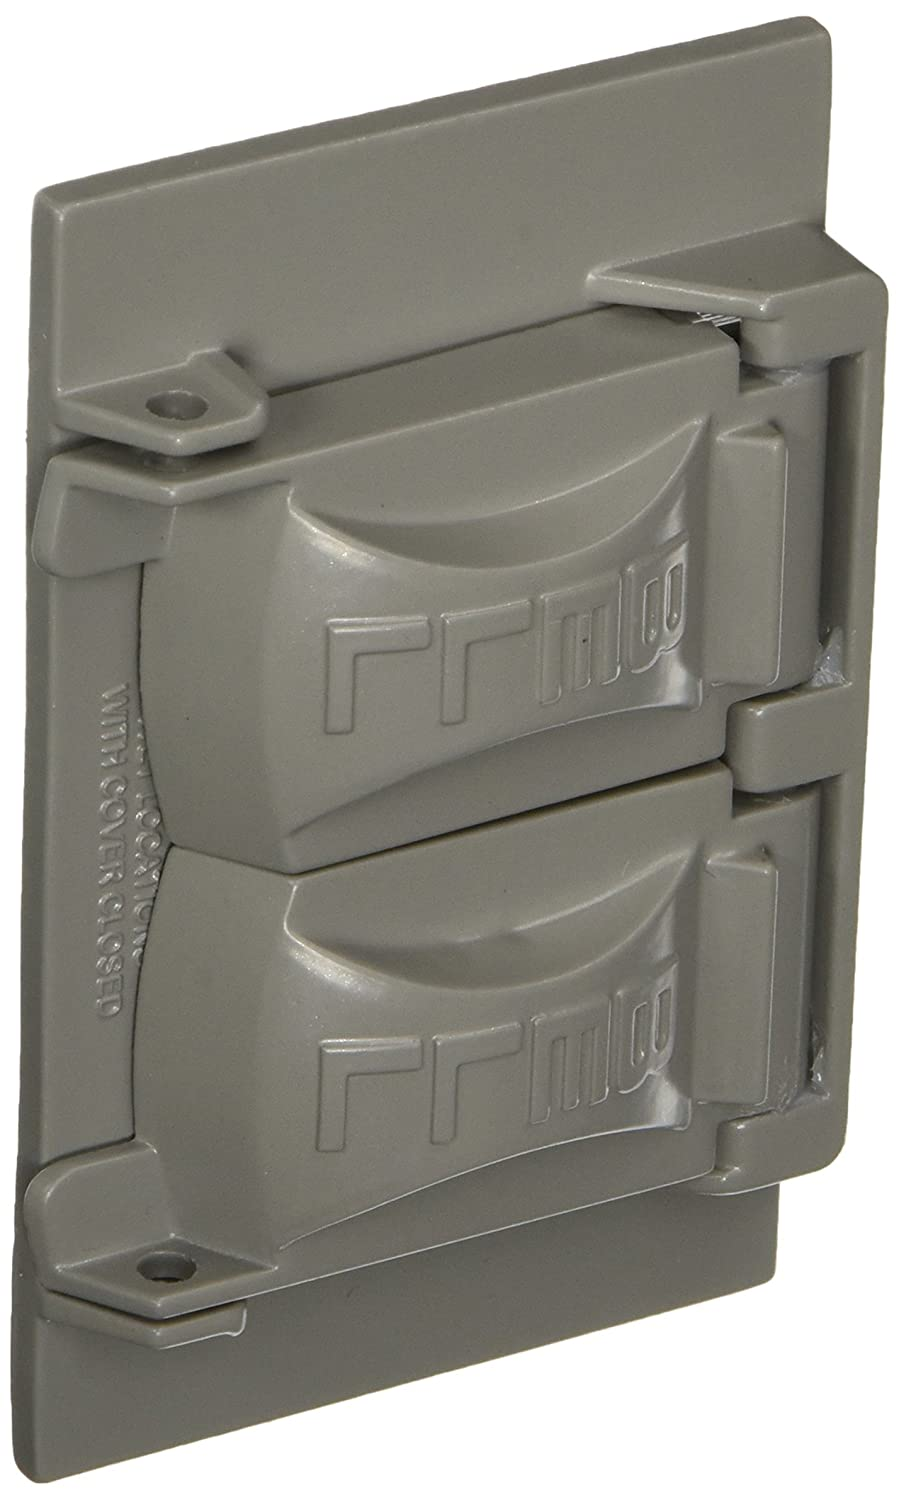 Hubbell-Bell CH100WH Weatherproof Metallic Device Cover Single Gang White Duplex